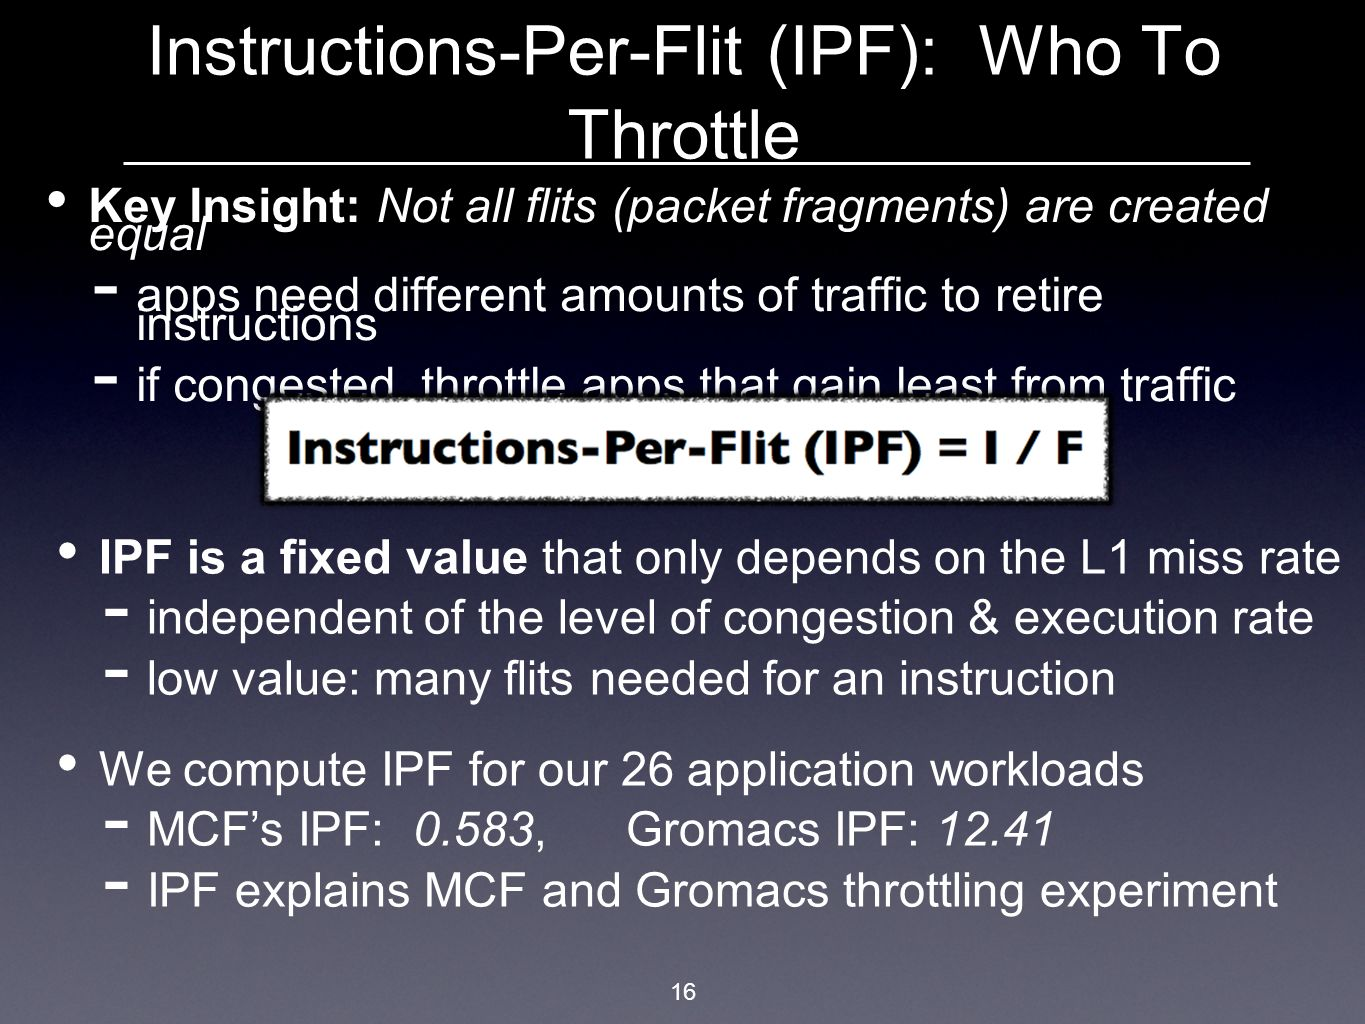 Instructions-Per-Flit (IPF): Who To Throttle